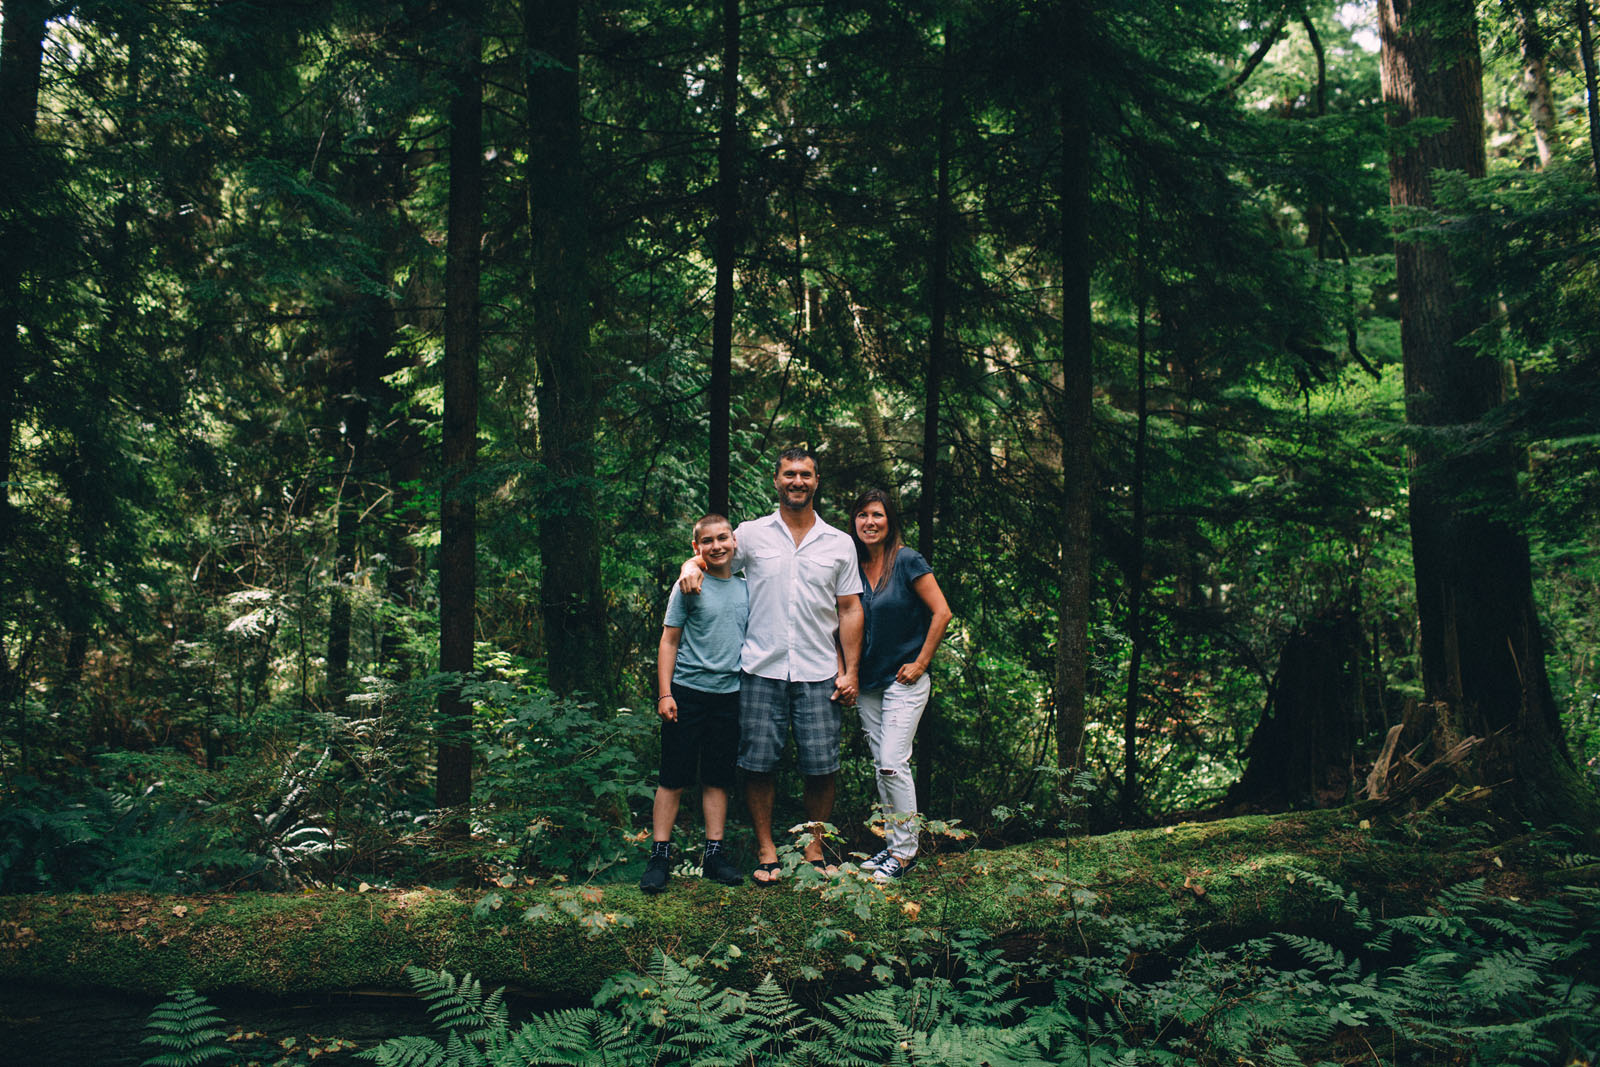 Stanley-Park-family-portrait-Vancouver-photographer-Sam-Wong-of-Visual-Cravings_05